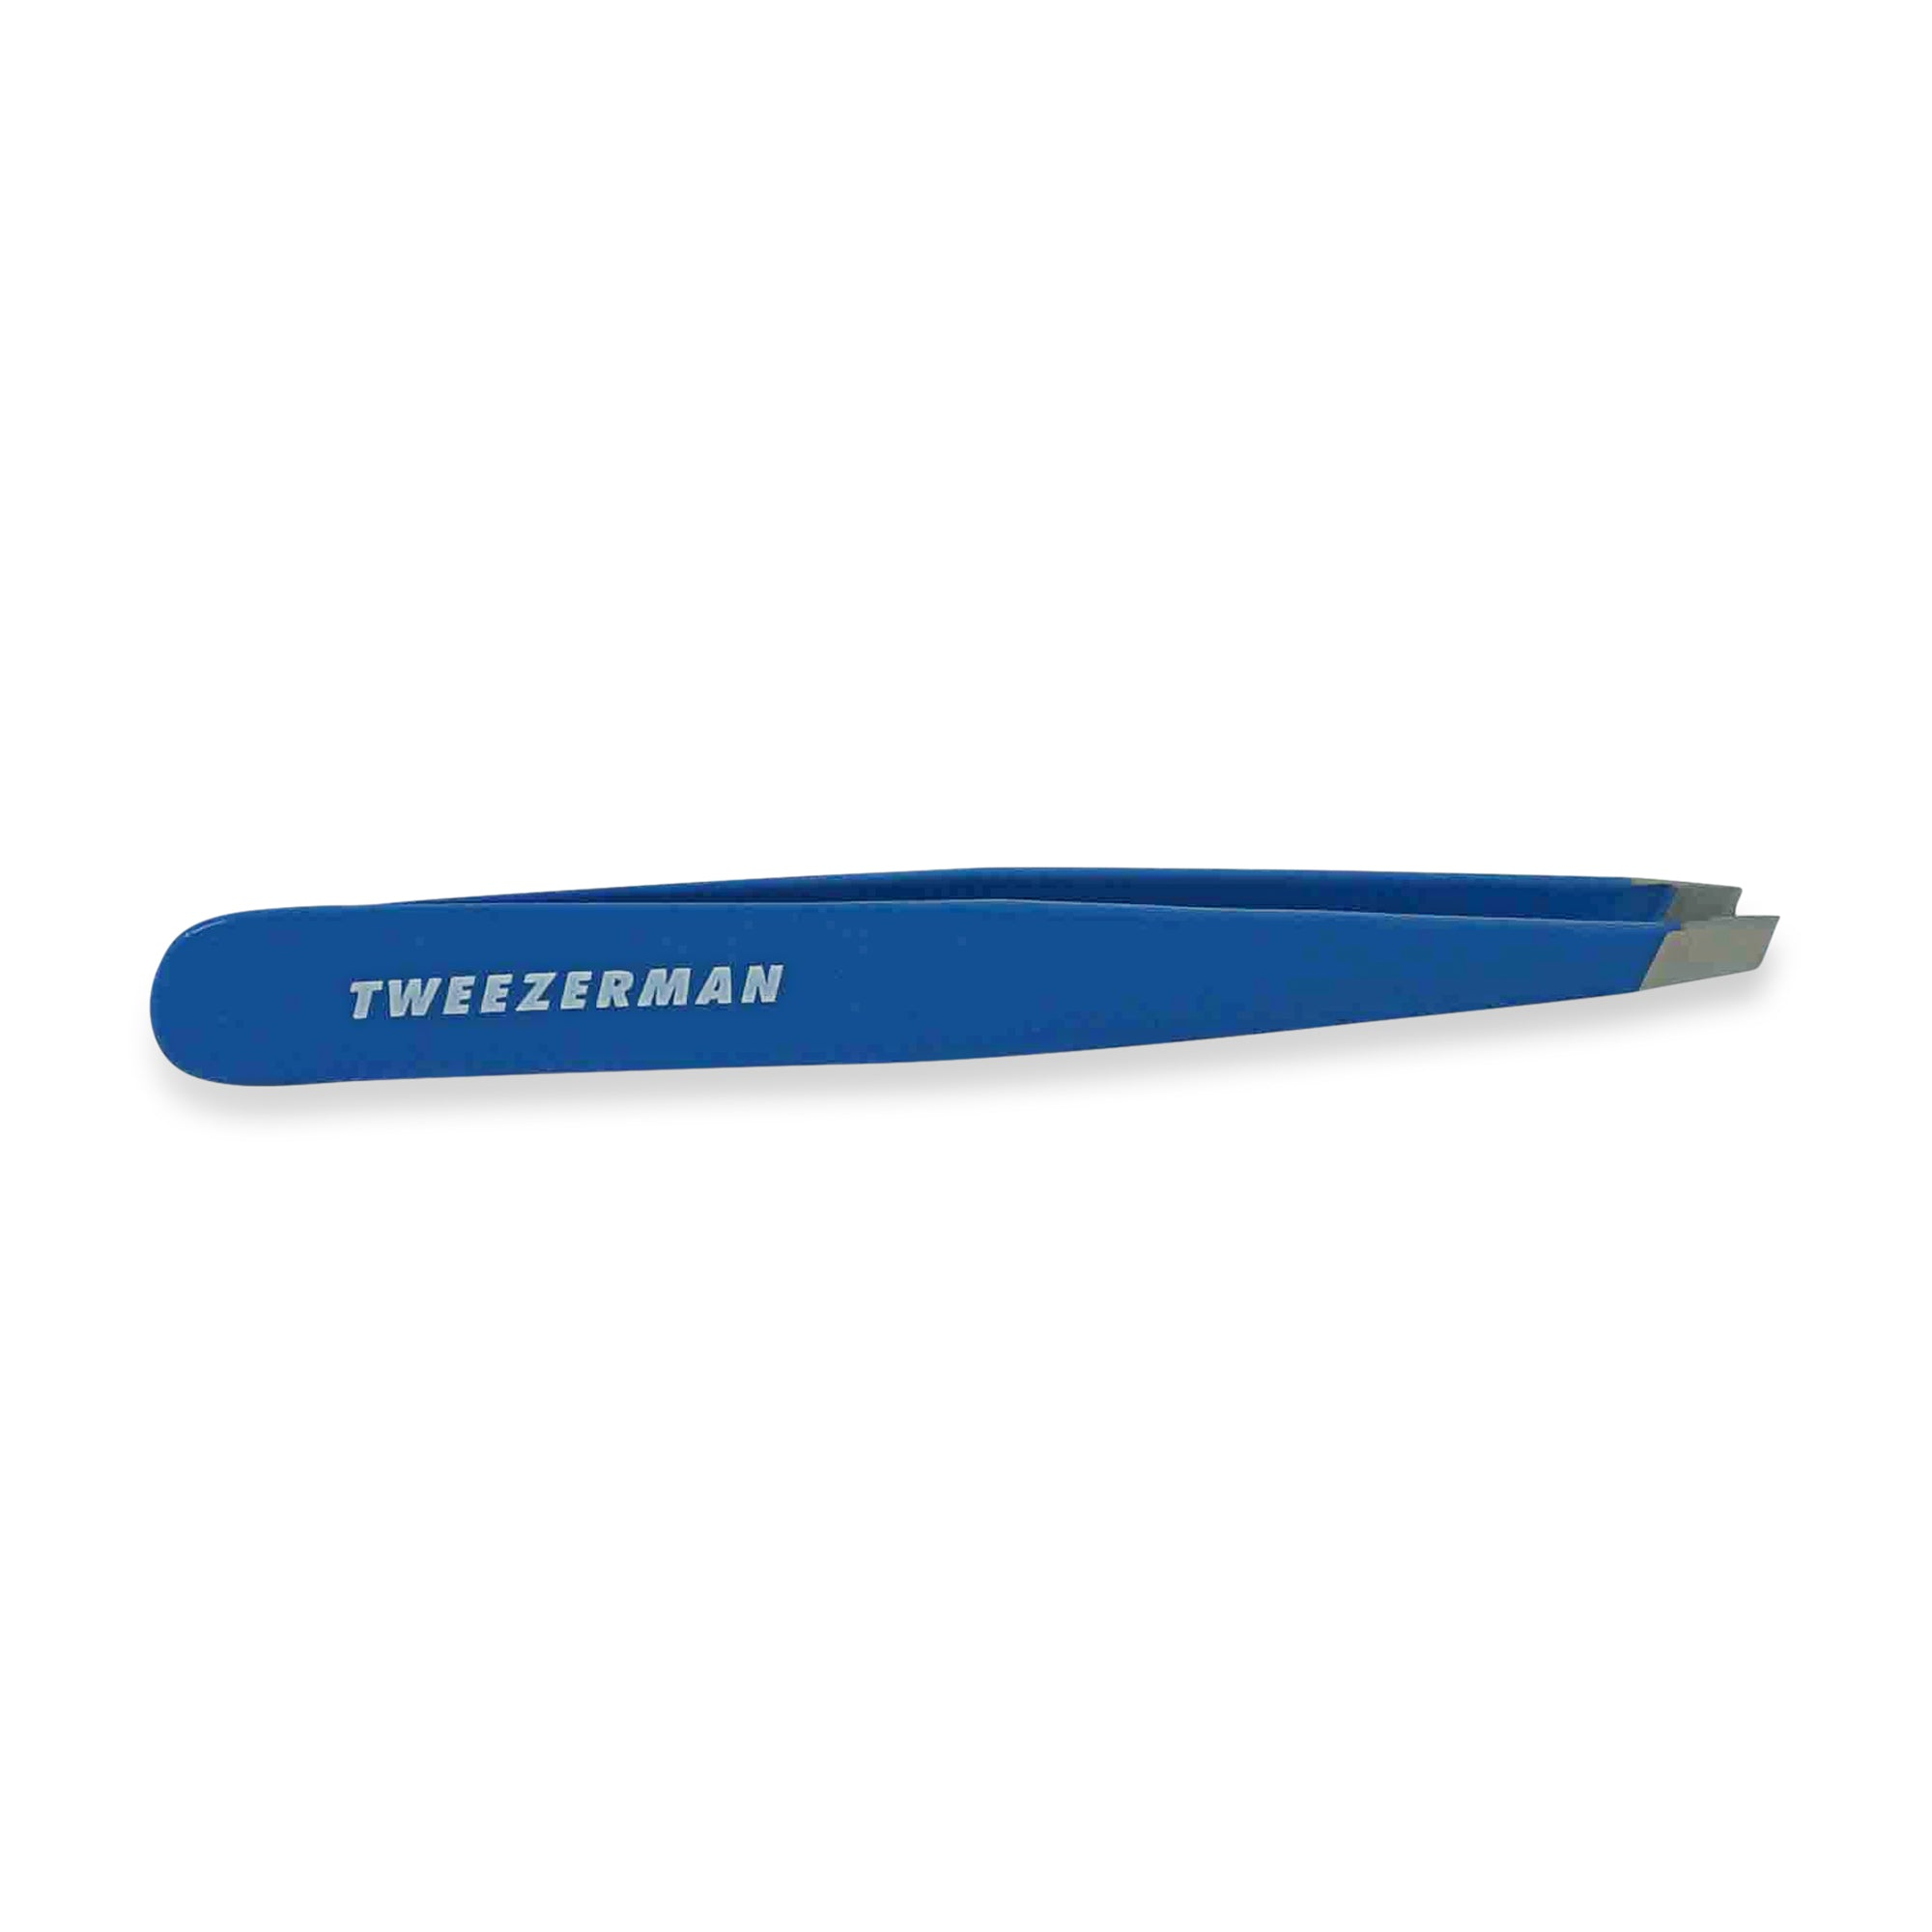 Tweezerman Slant Tweezer Bahama Blue